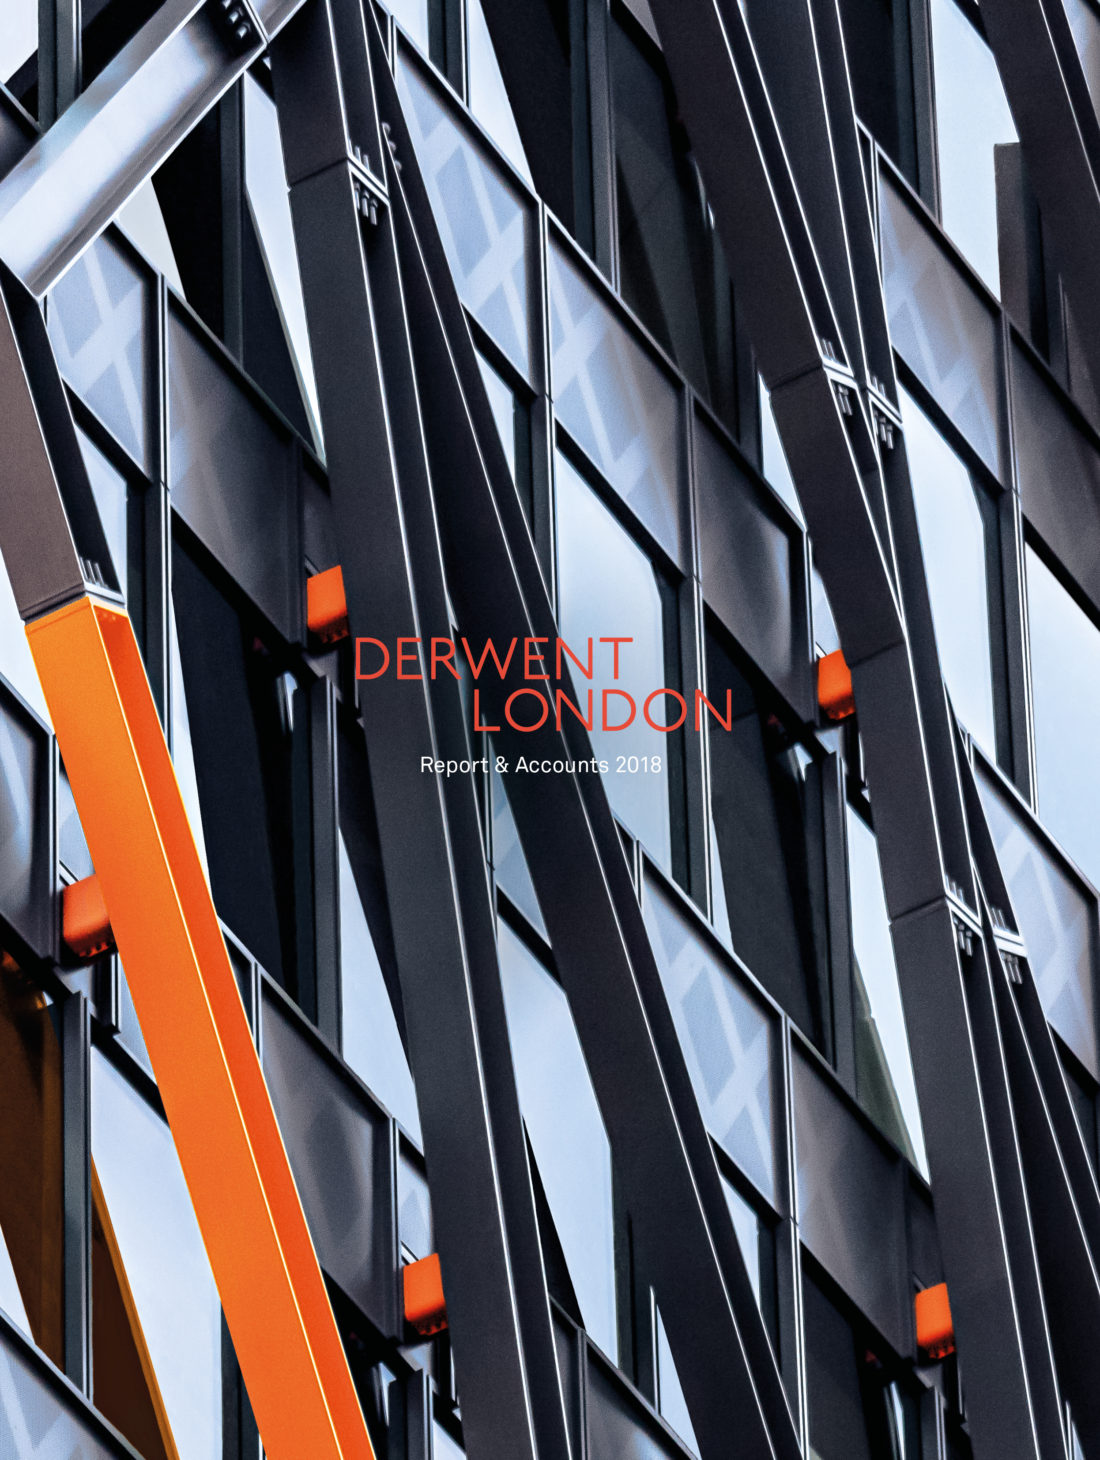 Derwent London wins IR Society award for Best Annual Report for FTSE250 image